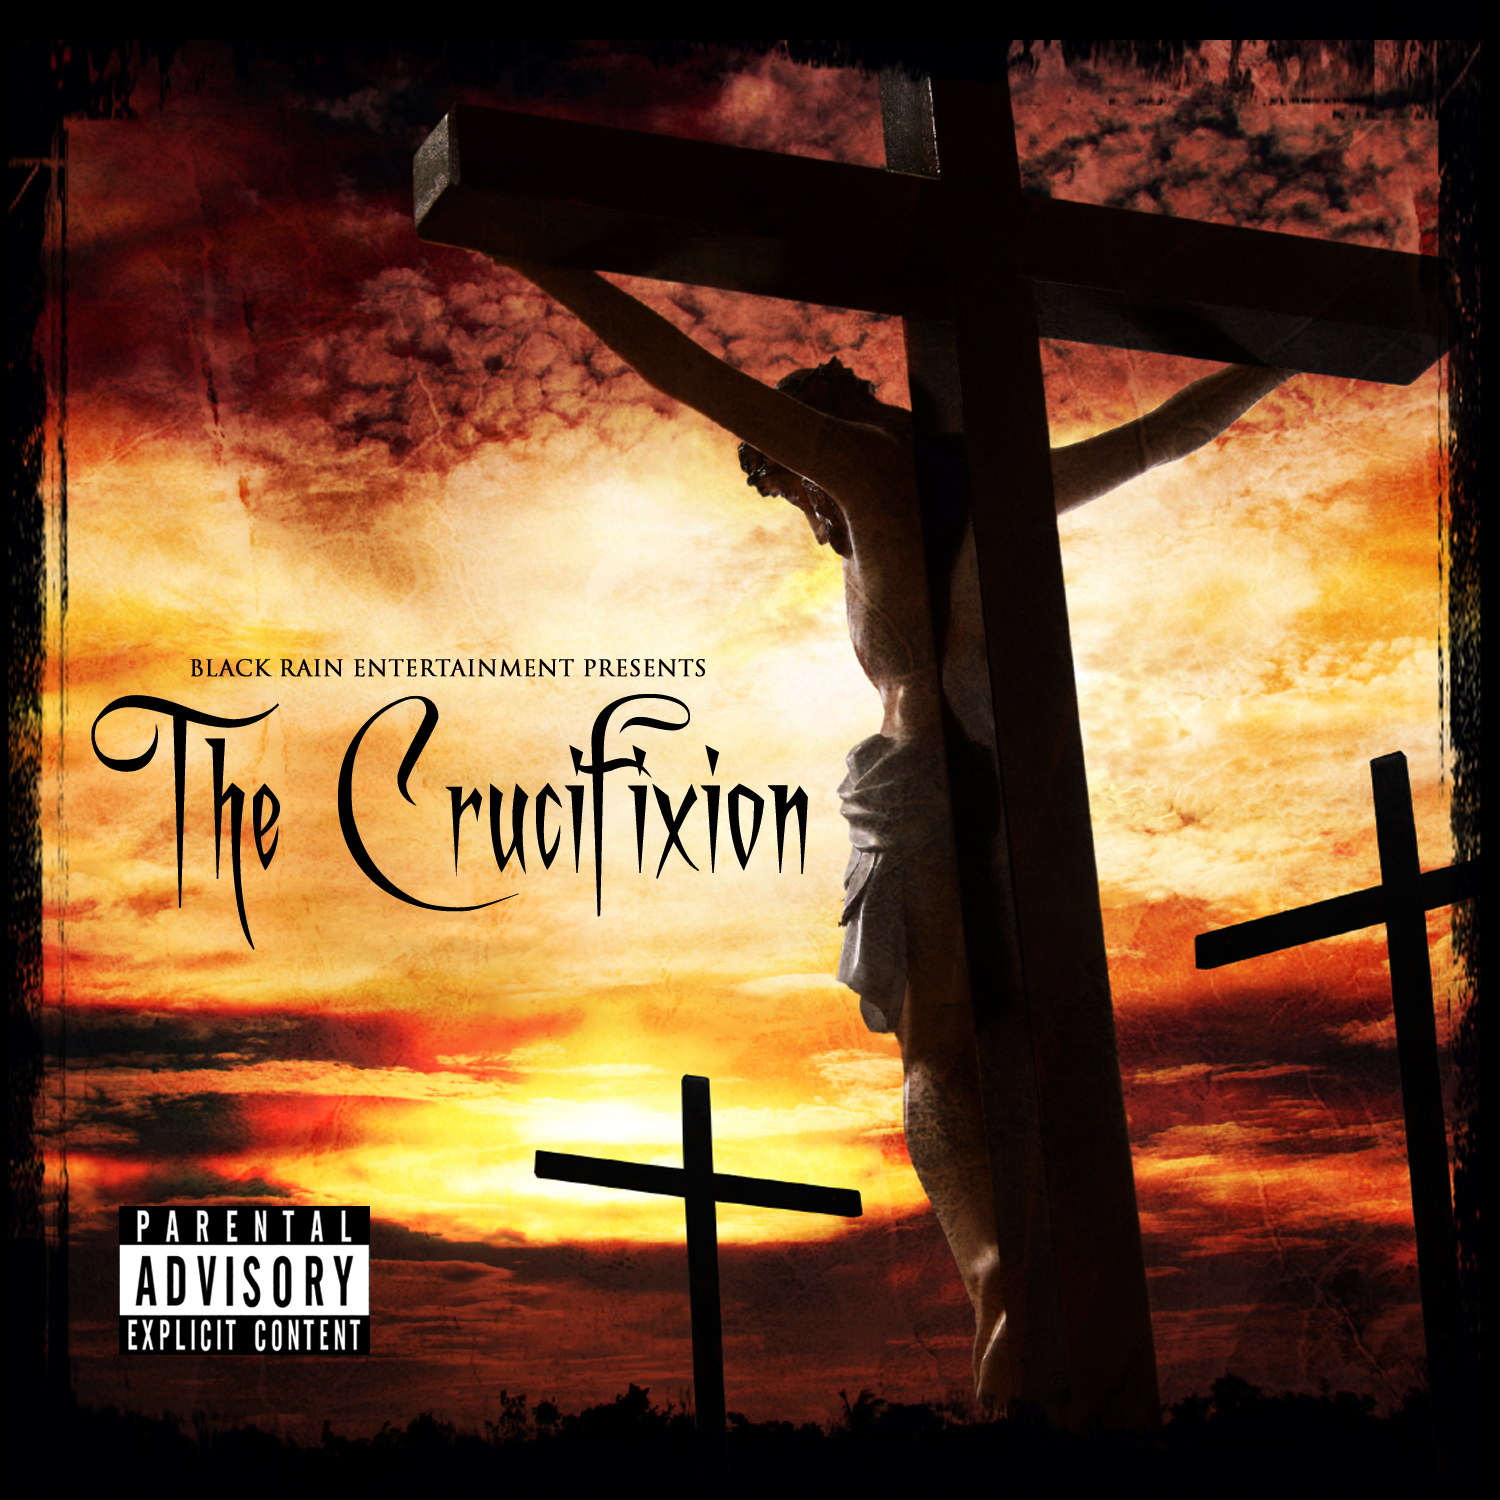 Lord Infamous and Black Rain Entertainment Presents Tha Crucifixion